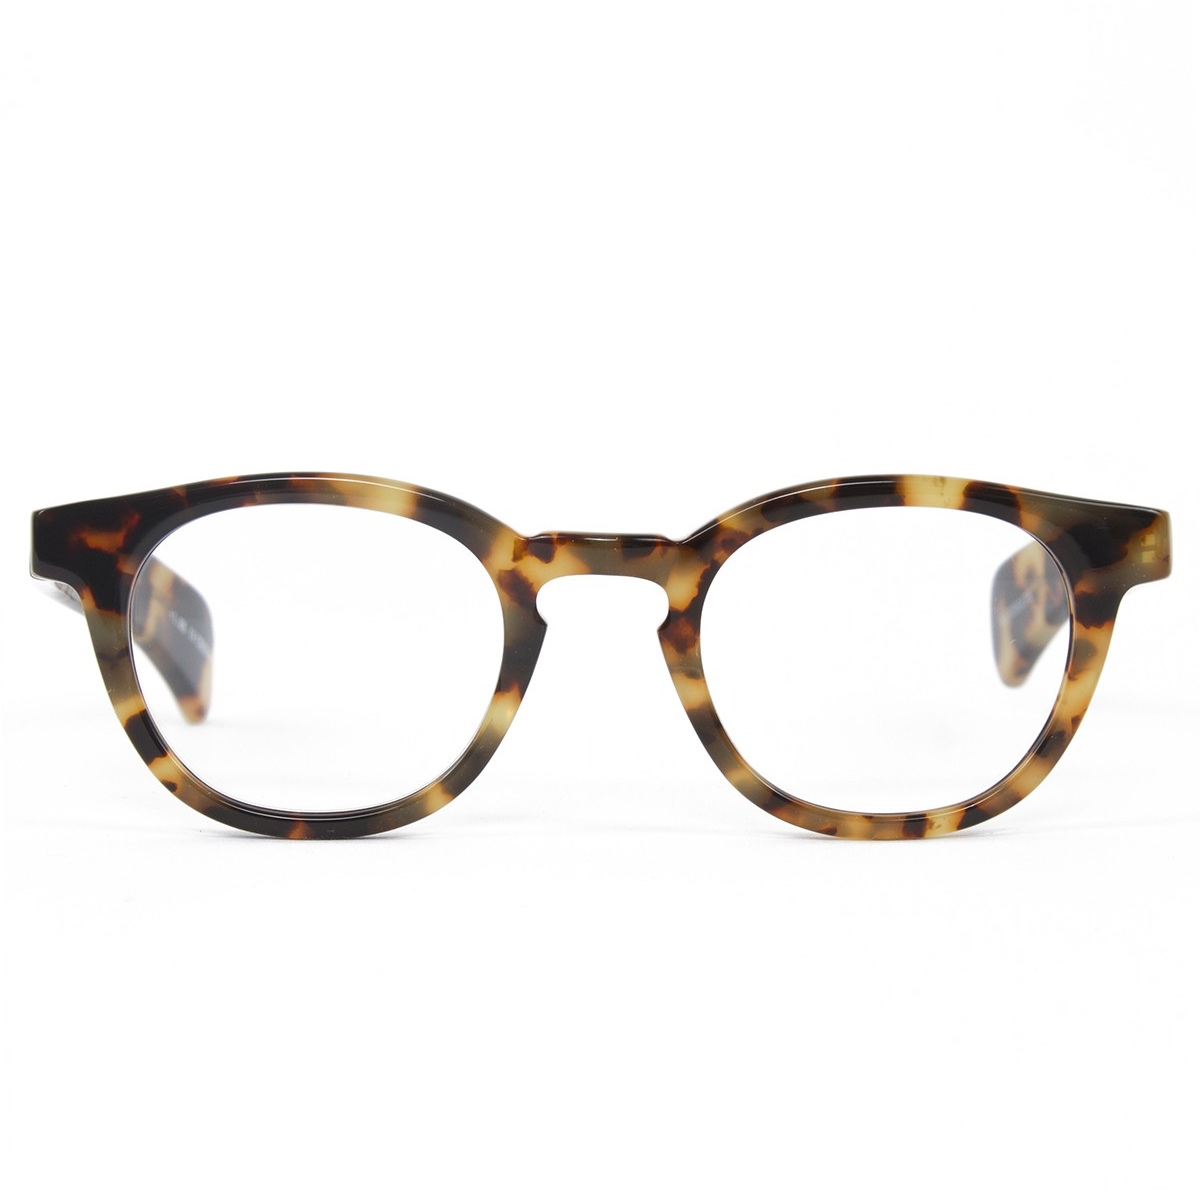 Total Wit Eyebobs inTokyo Tortoise